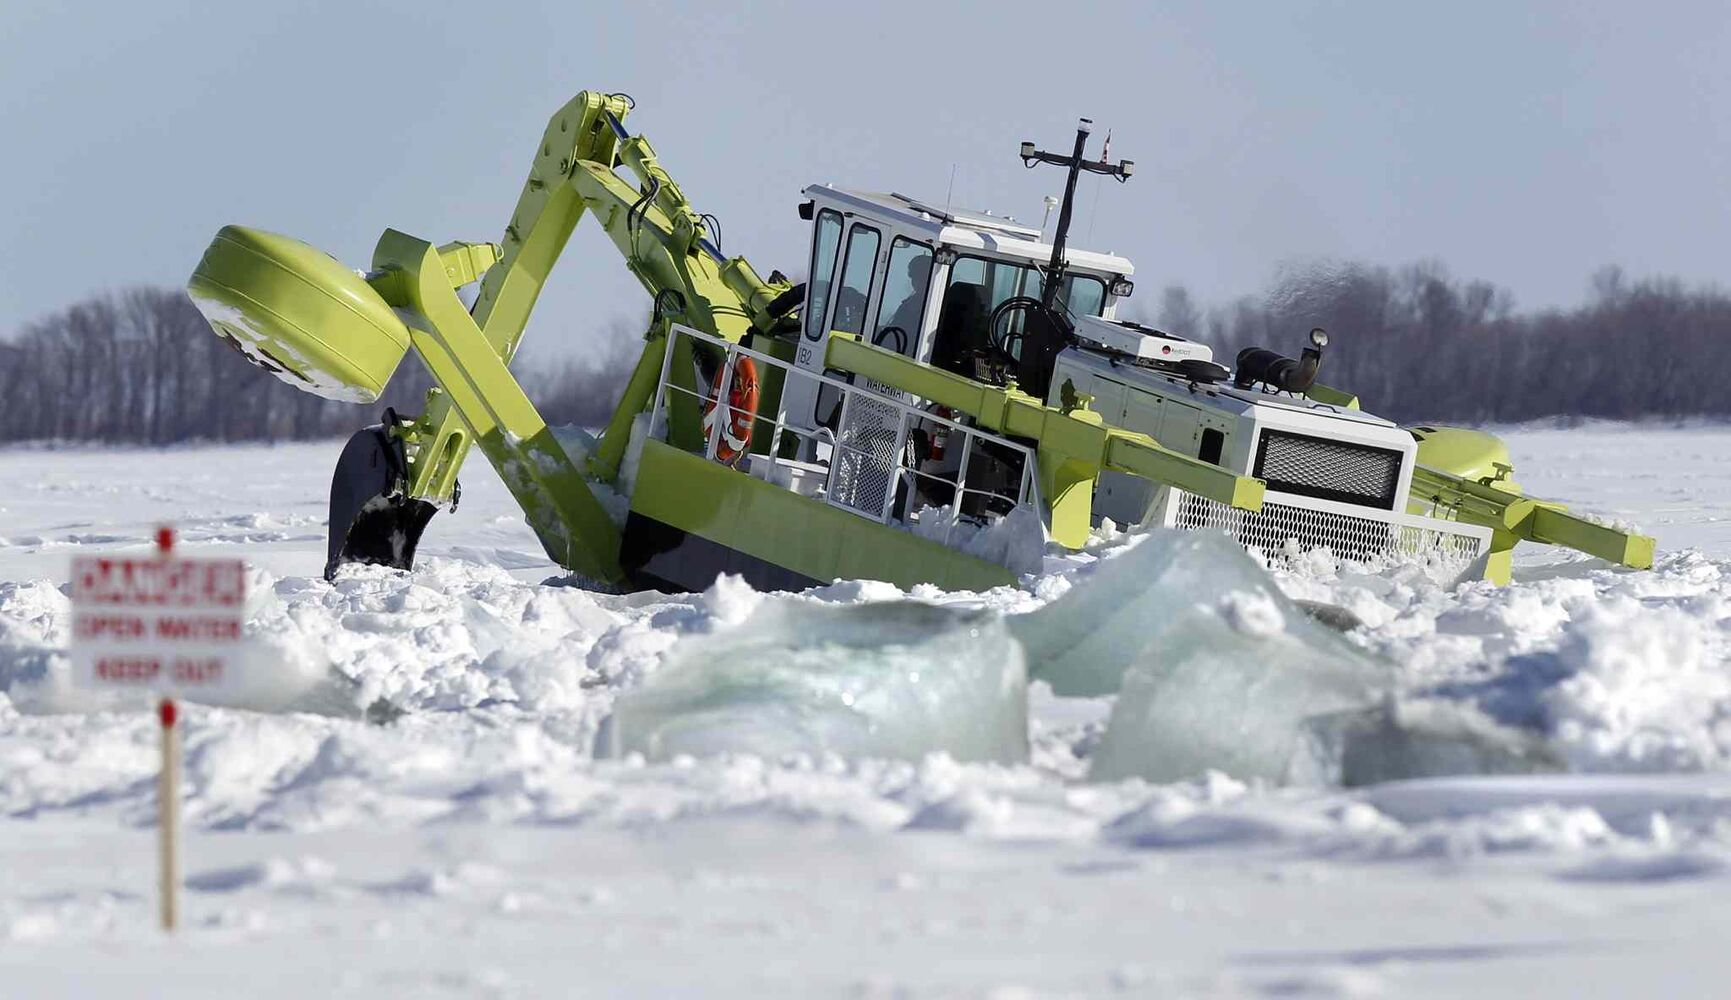 Three Amphibex ice-breaking machines were out on the Red River north of Selkirk earlier this month as part of the 2014 ice jam mitigation program, which apparently wasn't a sign of early spring.